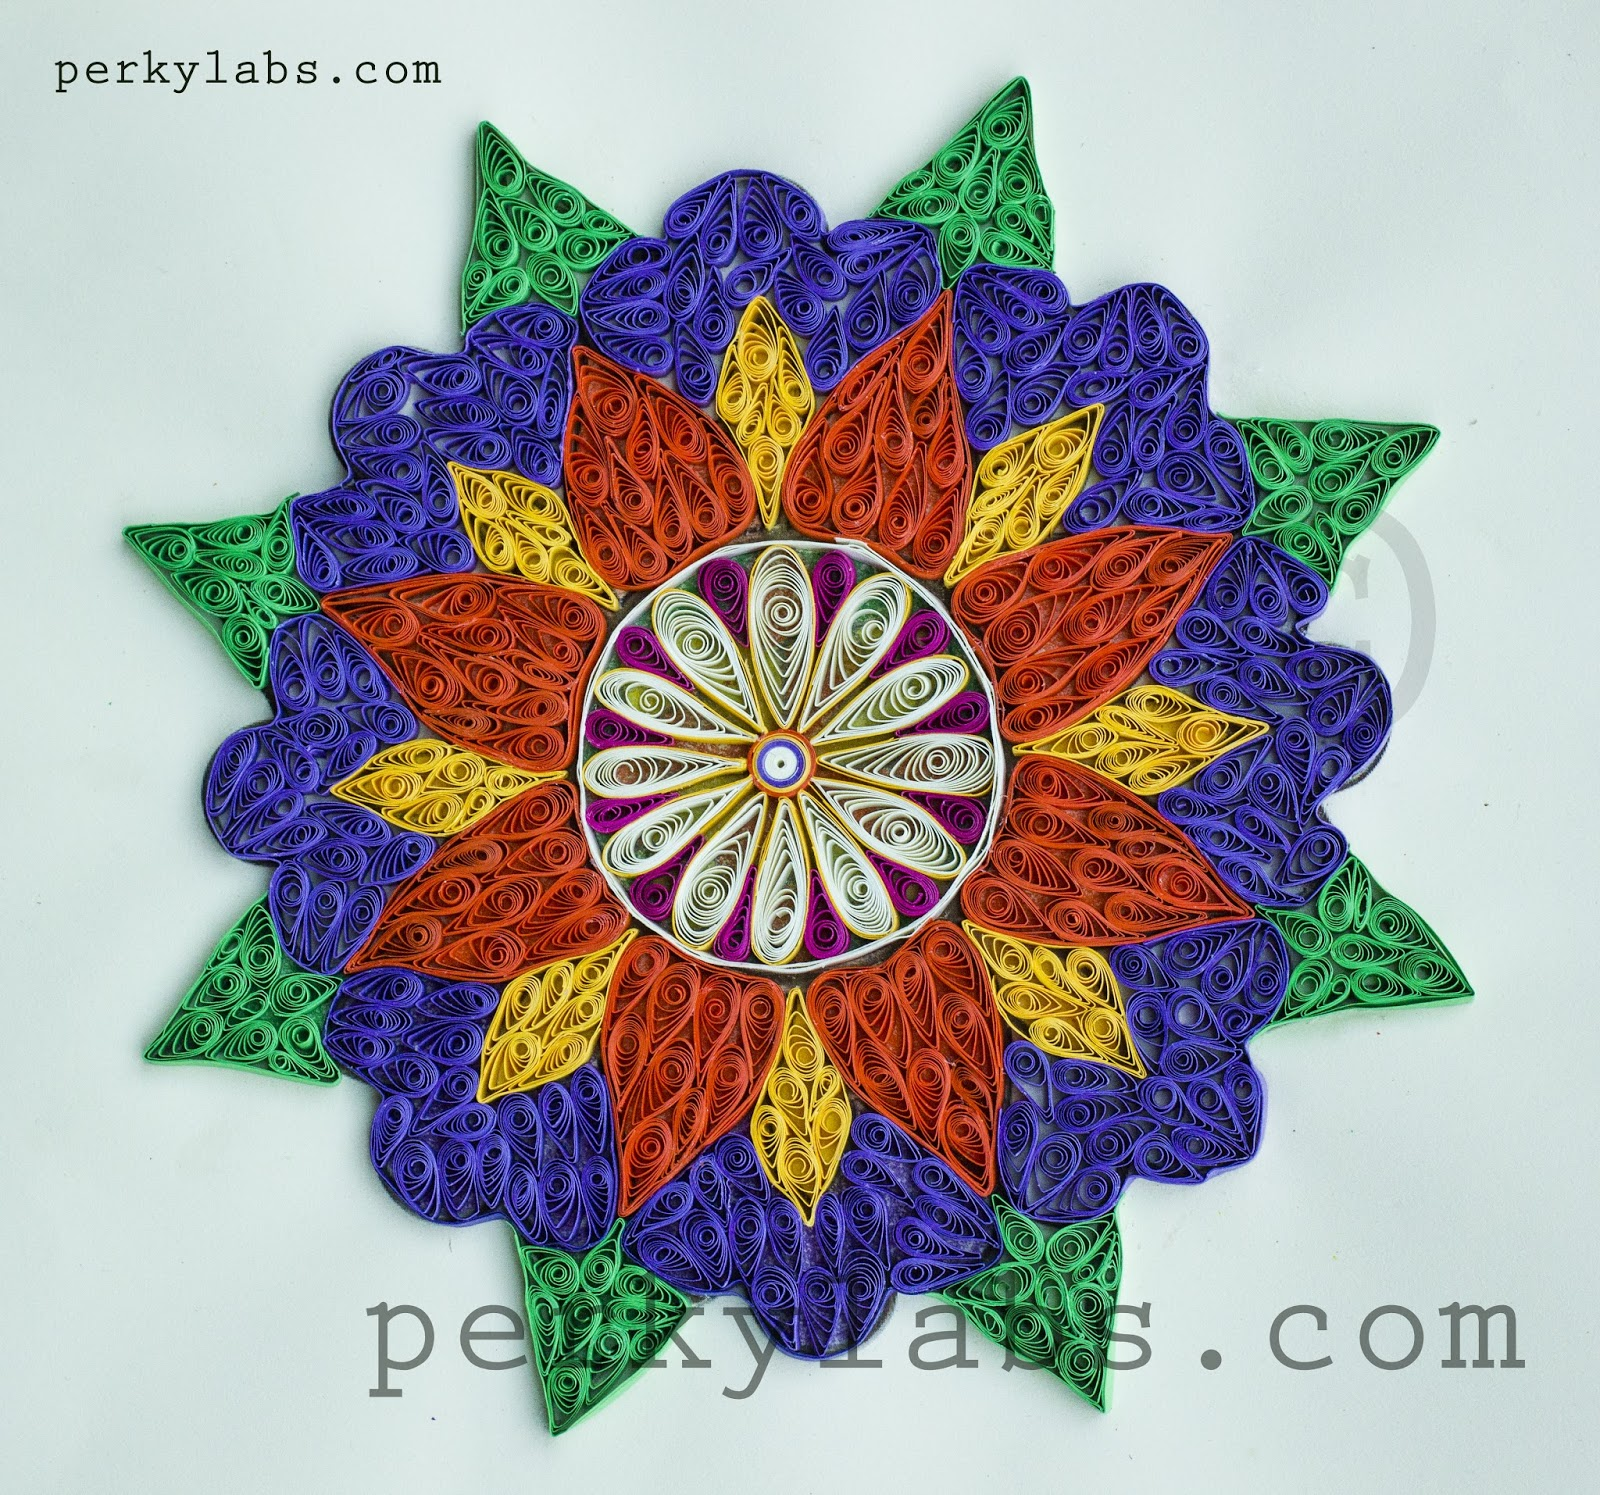 Perkylabs quilled frame mosaic quilling design for Quilling strips designs